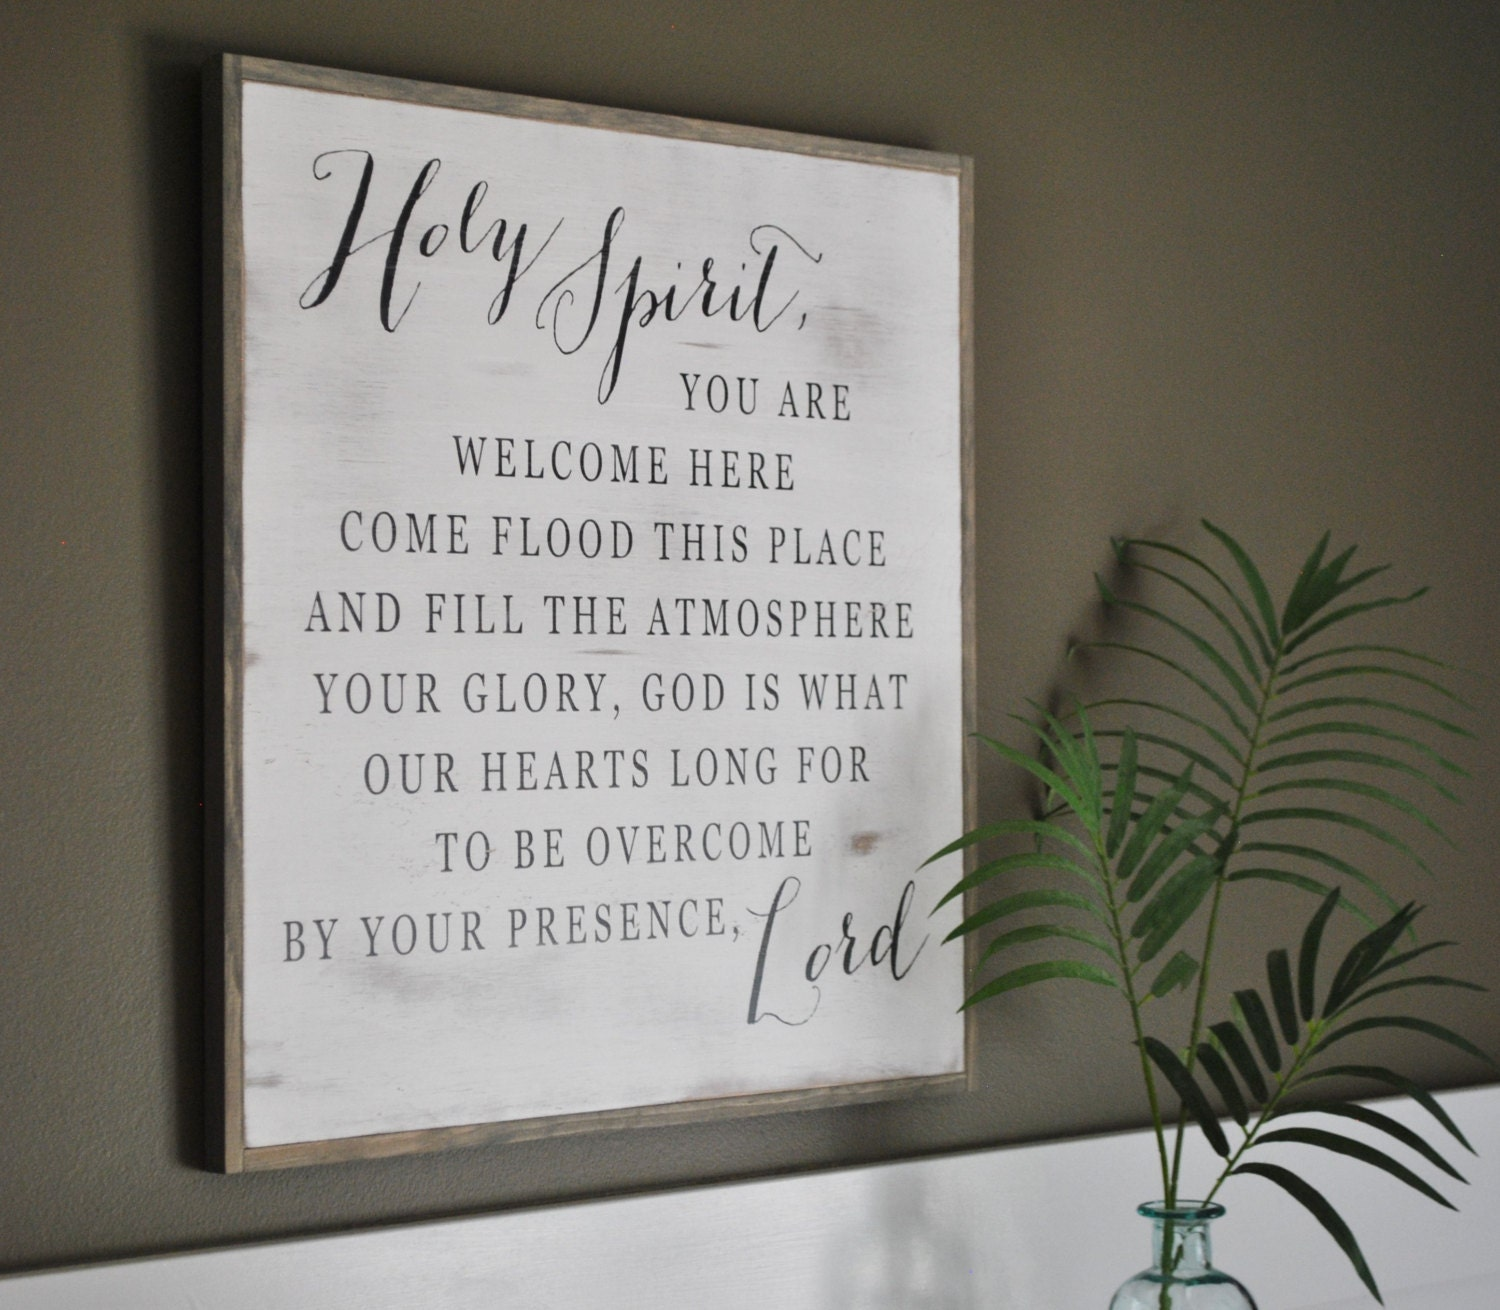 HOLY SPIRIT 2u0027X2u0027 || Inspirational Wall Art || Distressed Shabby Chic Decor  || Farmhouse Style Design || Framed Wooden Plaque